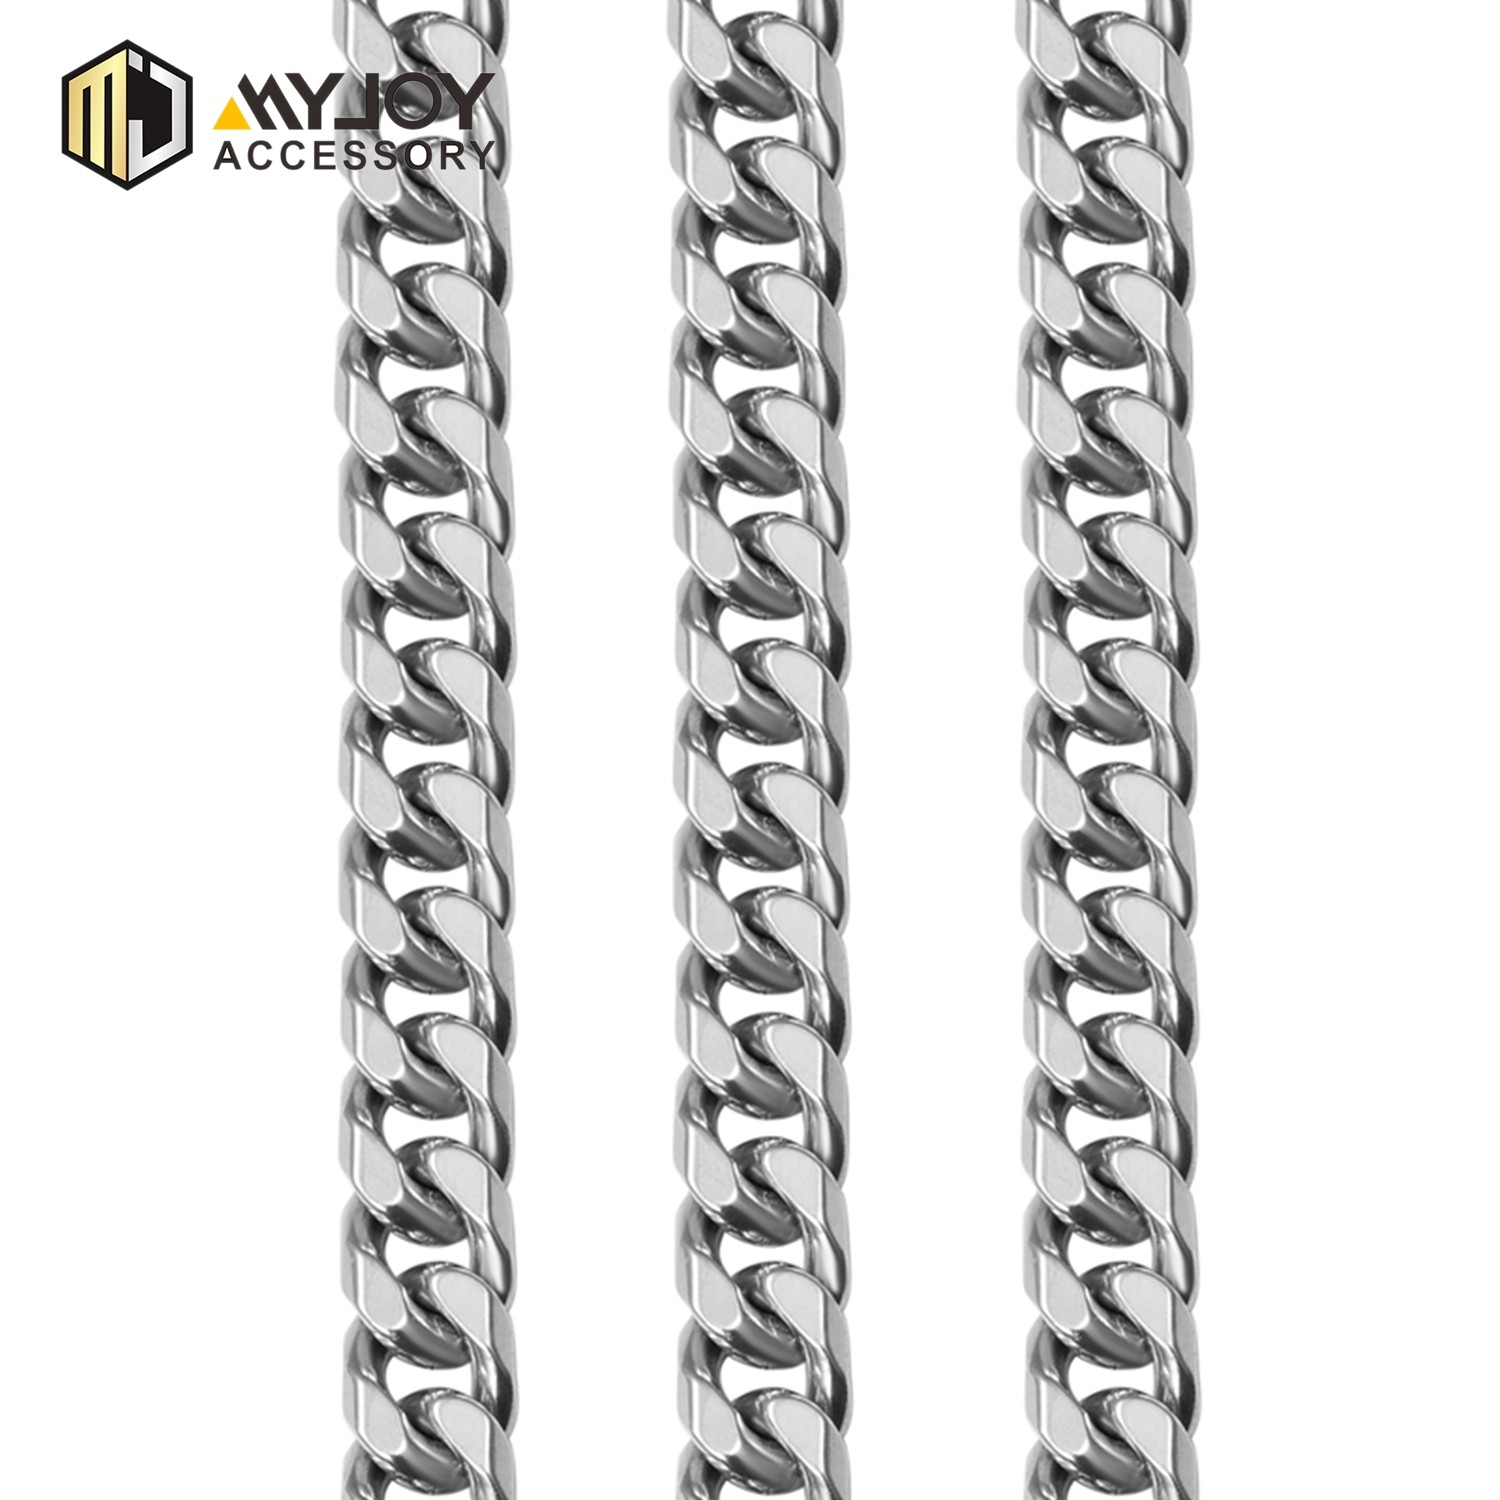 Best handbag strap chain chains Suppliers for bags-2